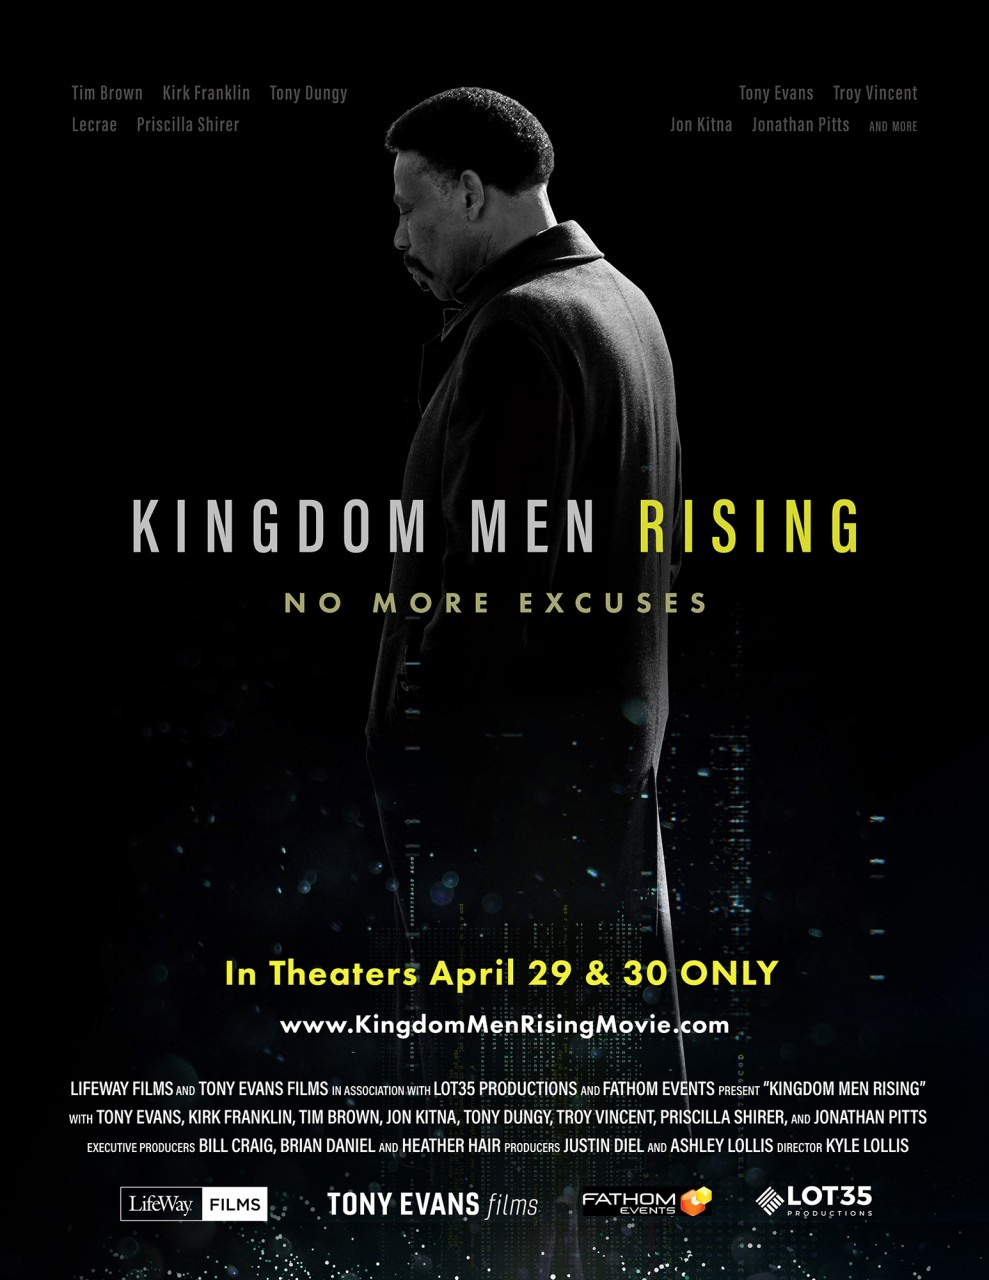 'Kingdom Men Rising' film promotes biblical manhood